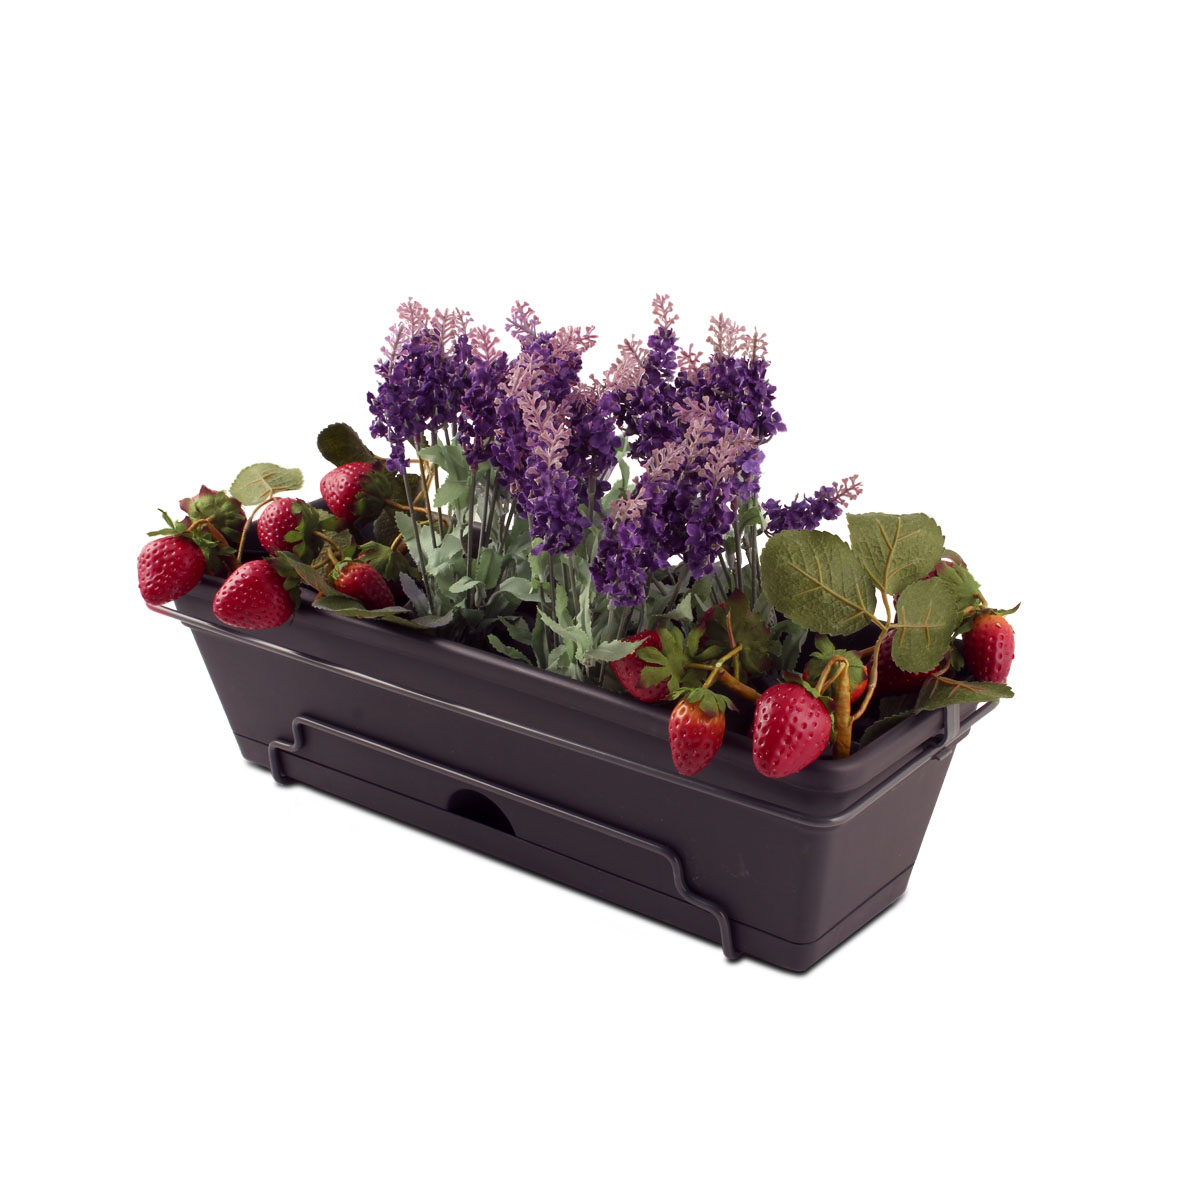 18427 Garden Up Classic Planter Charcoal with plants